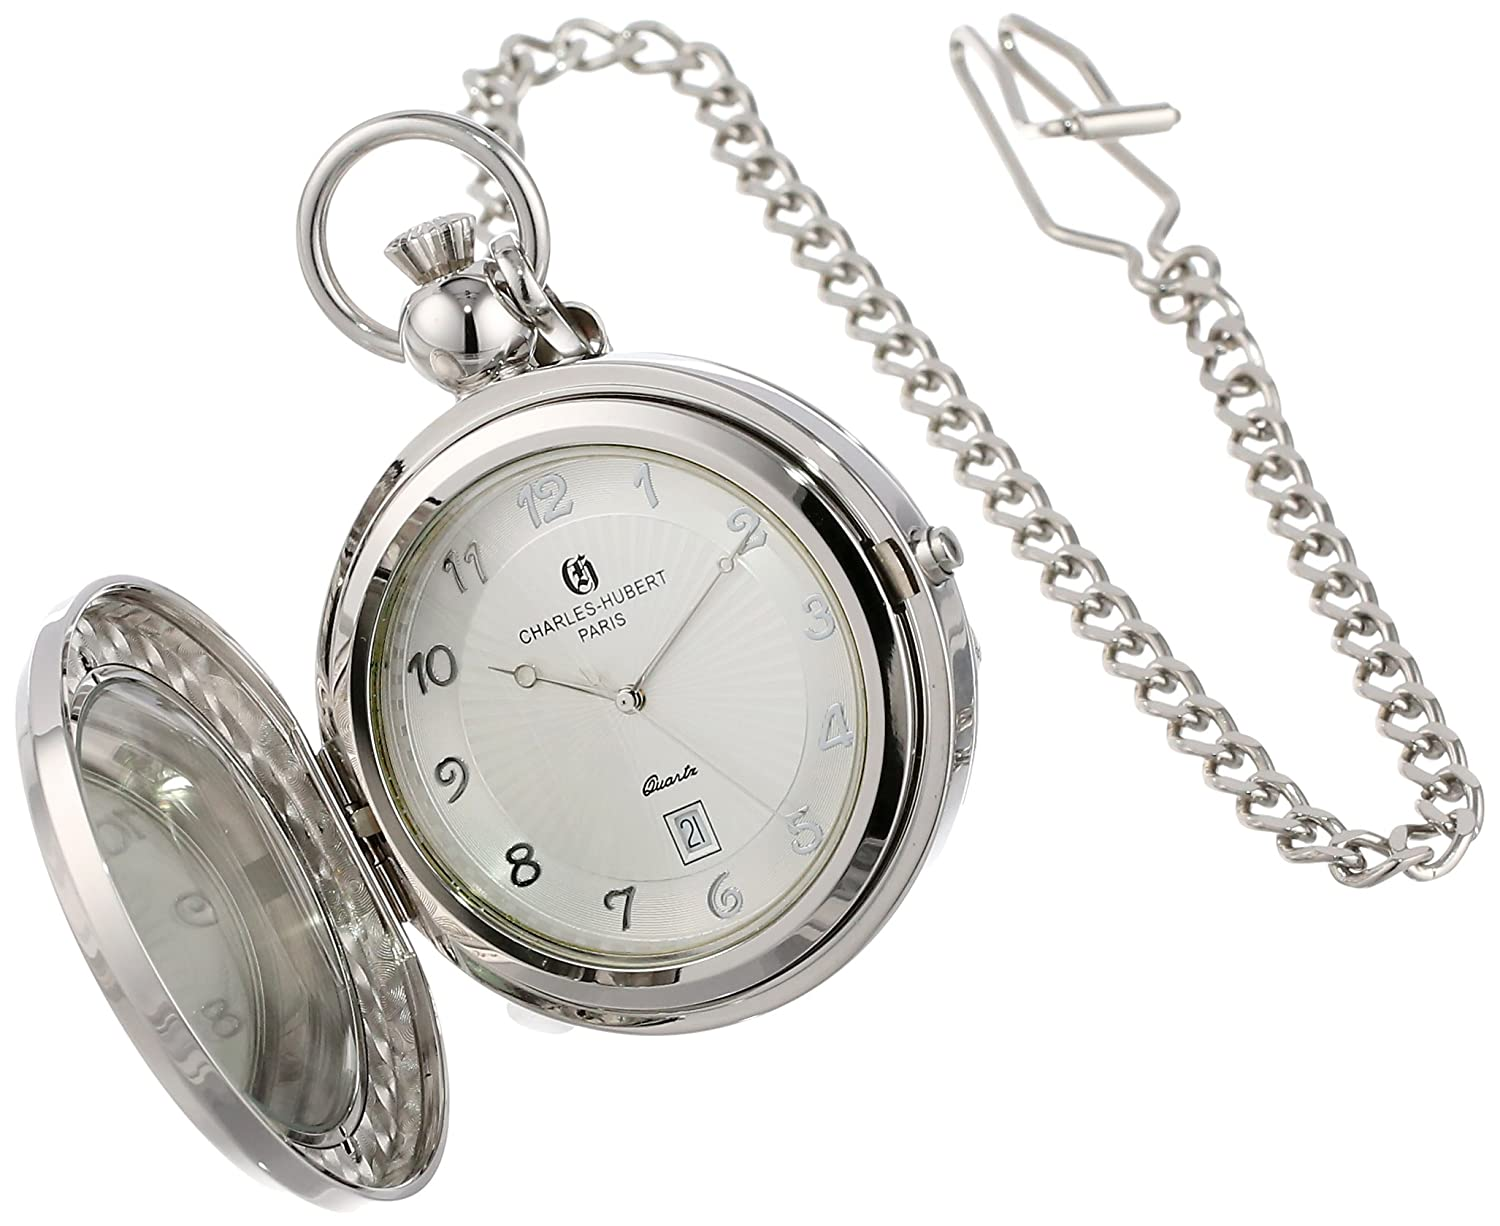 Amazon charles hubert 3851 quartz picture frame pocket watch amazon charles hubert 3851 quartz picture frame pocket watch charles hubert paris watches jeuxipadfo Image collections